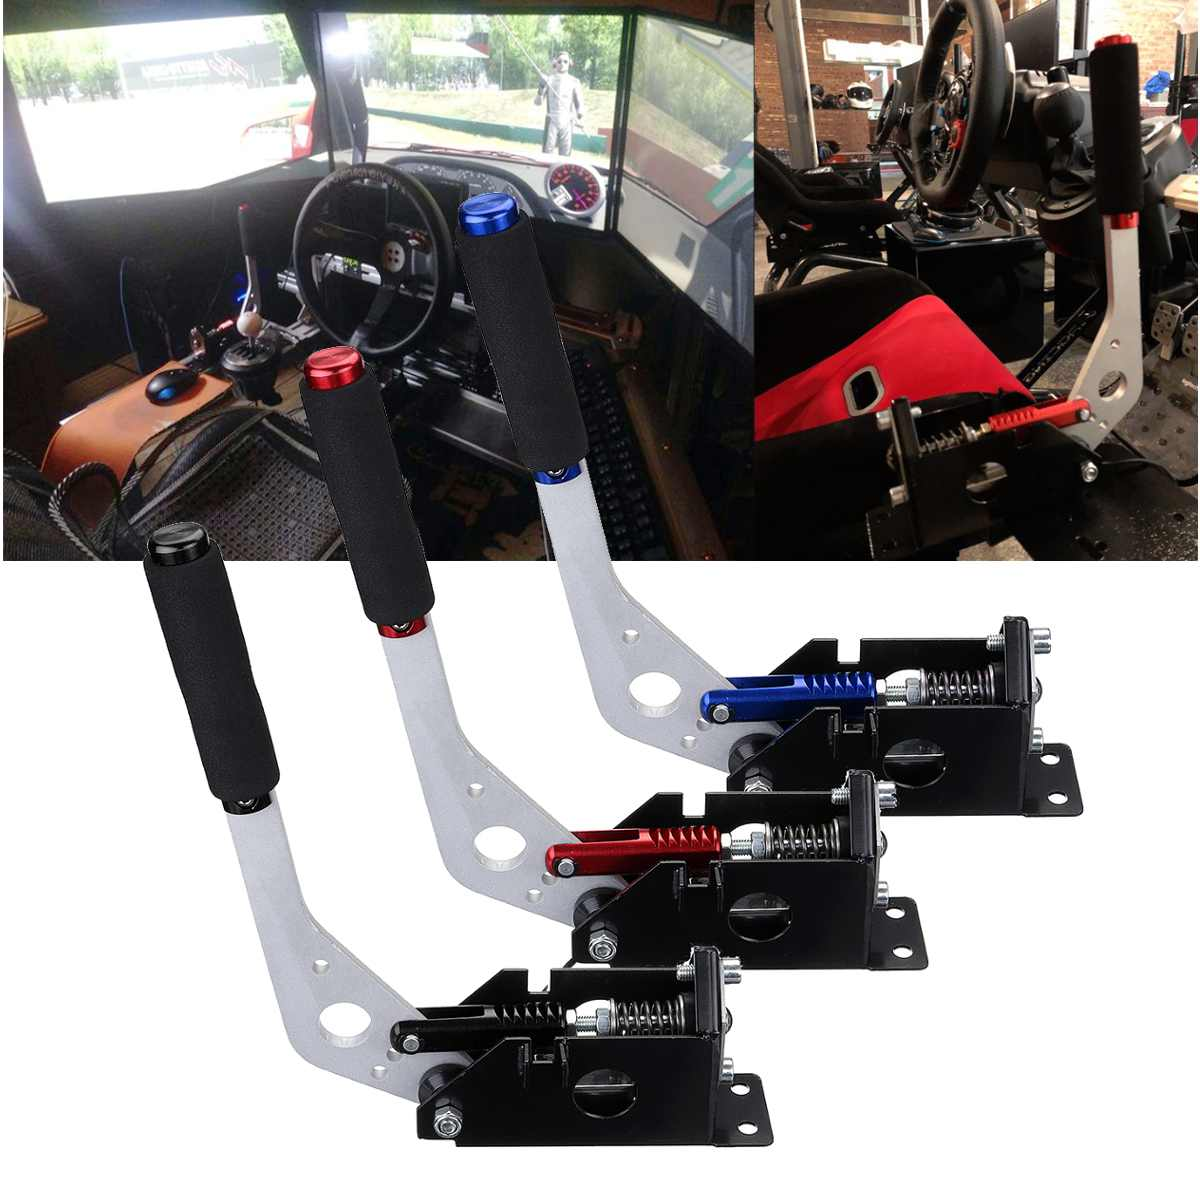 USB Handbremse Handbrake for Racing Games G25/ 27/29 T500 FANATEC OSW DIRT RALLY image